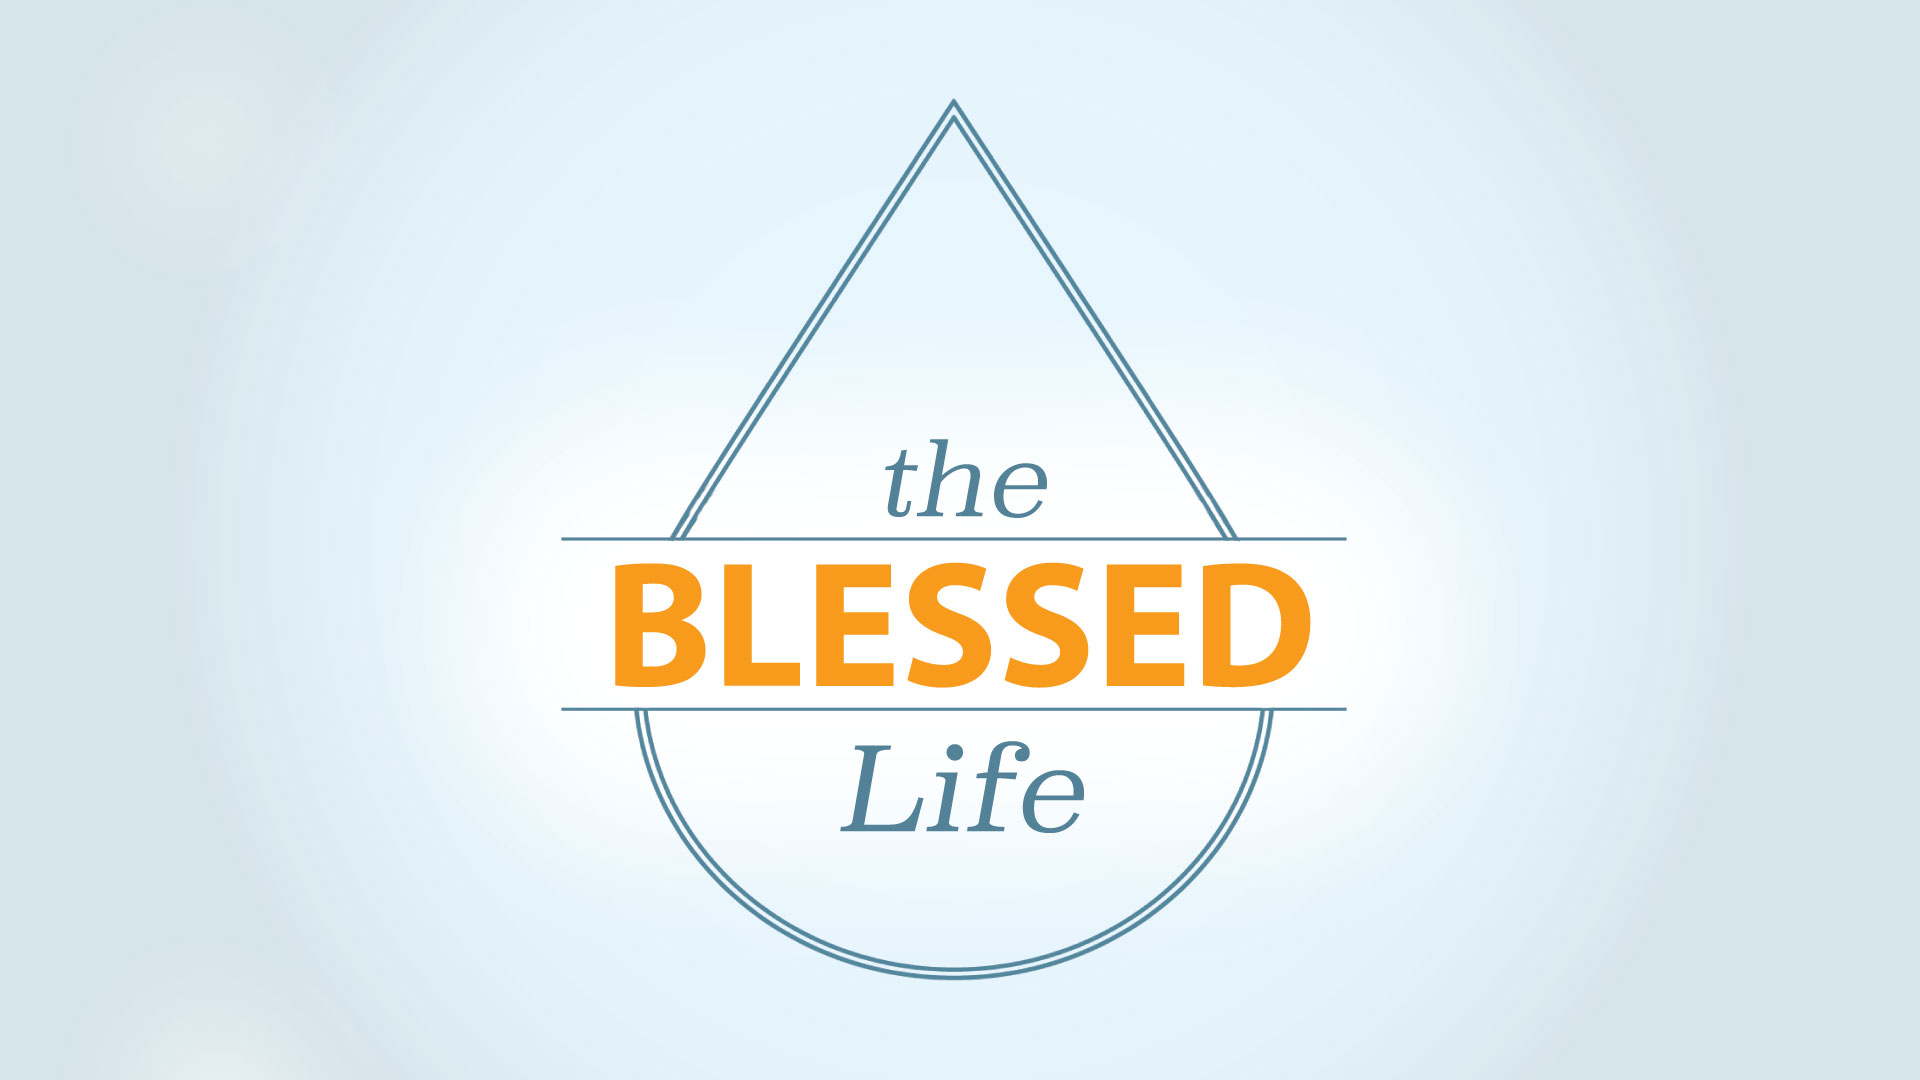 Blessed-Life-Title.jpg